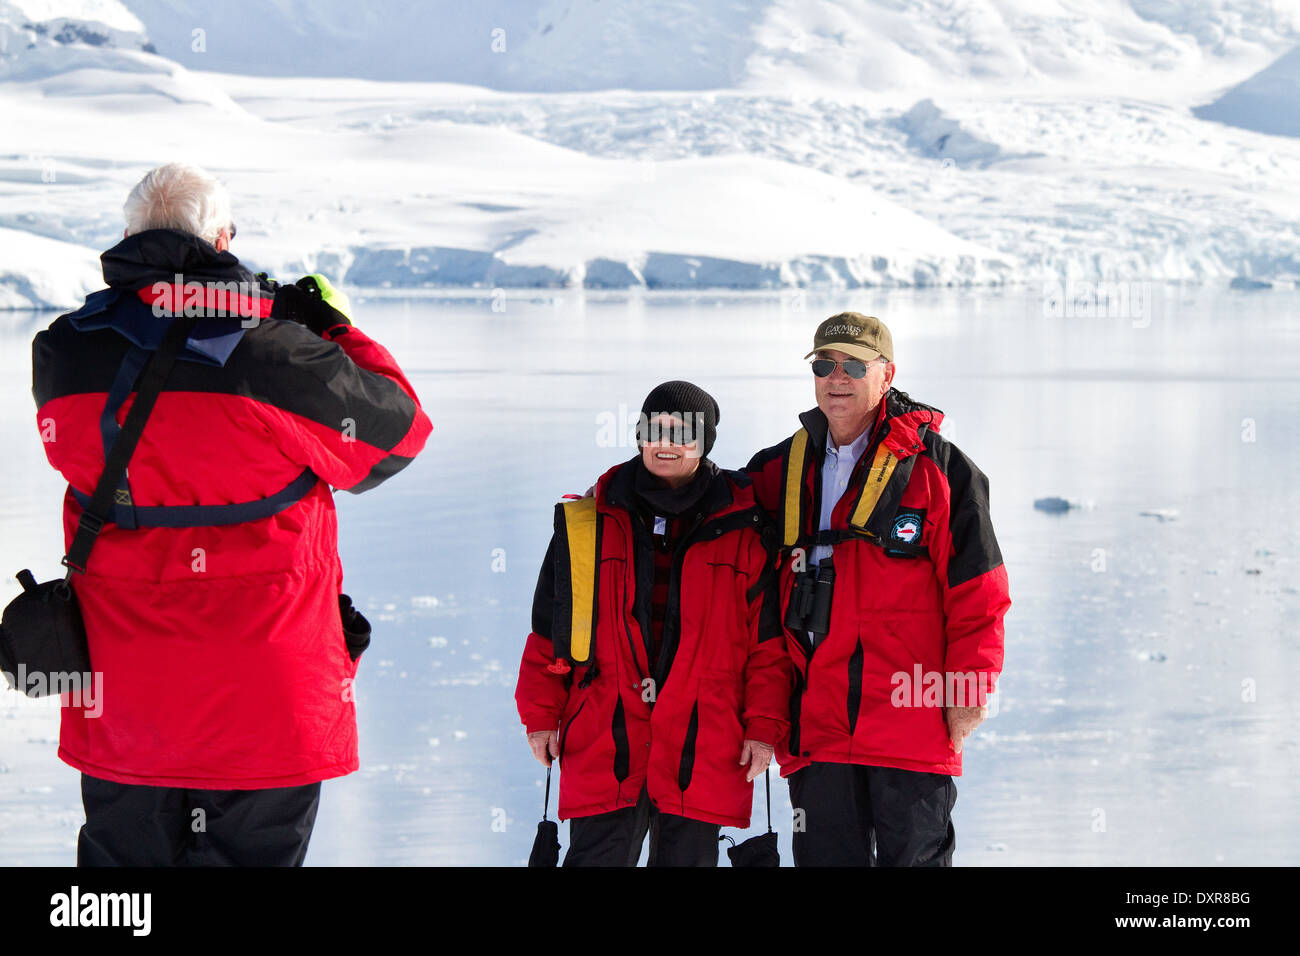 Antarctica tourists on cruise pose for camera in front of beautiful Antarctic landscape of glacier and iceberg. - Stock Image